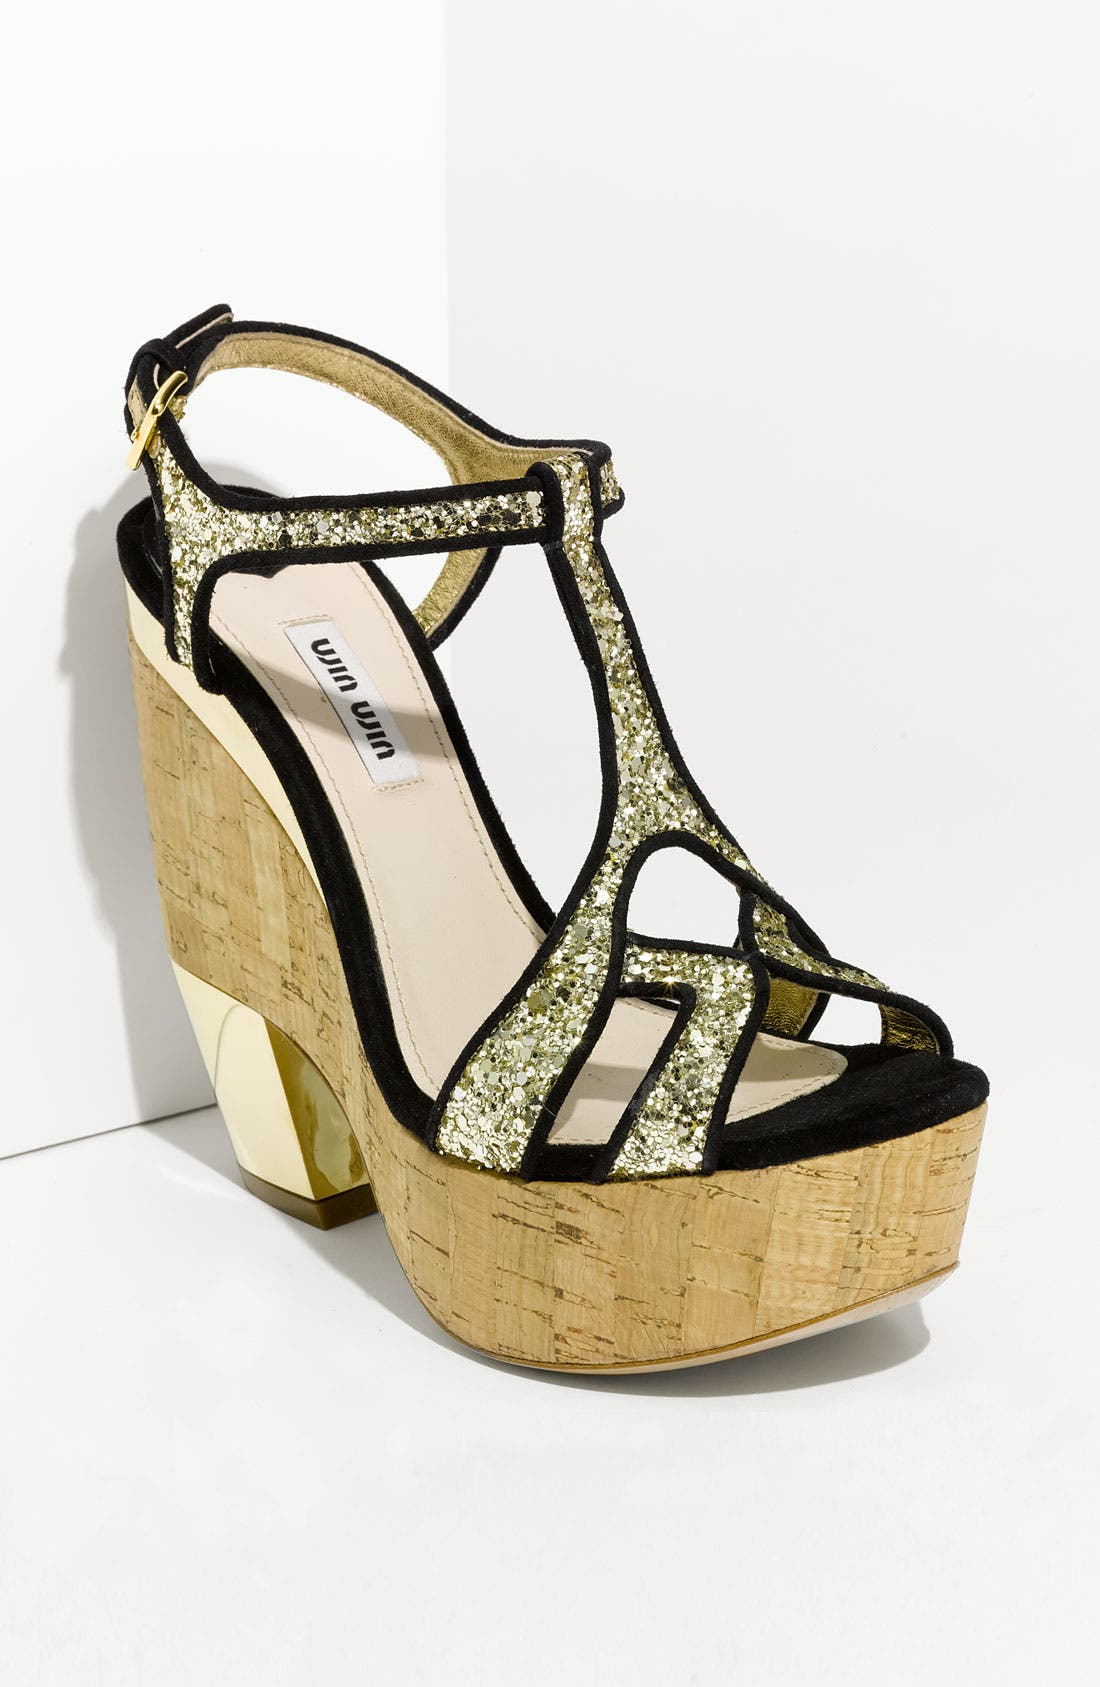 Alternate Image 1 Selected - Miu Miu Glitter Wedge Platform Sandal